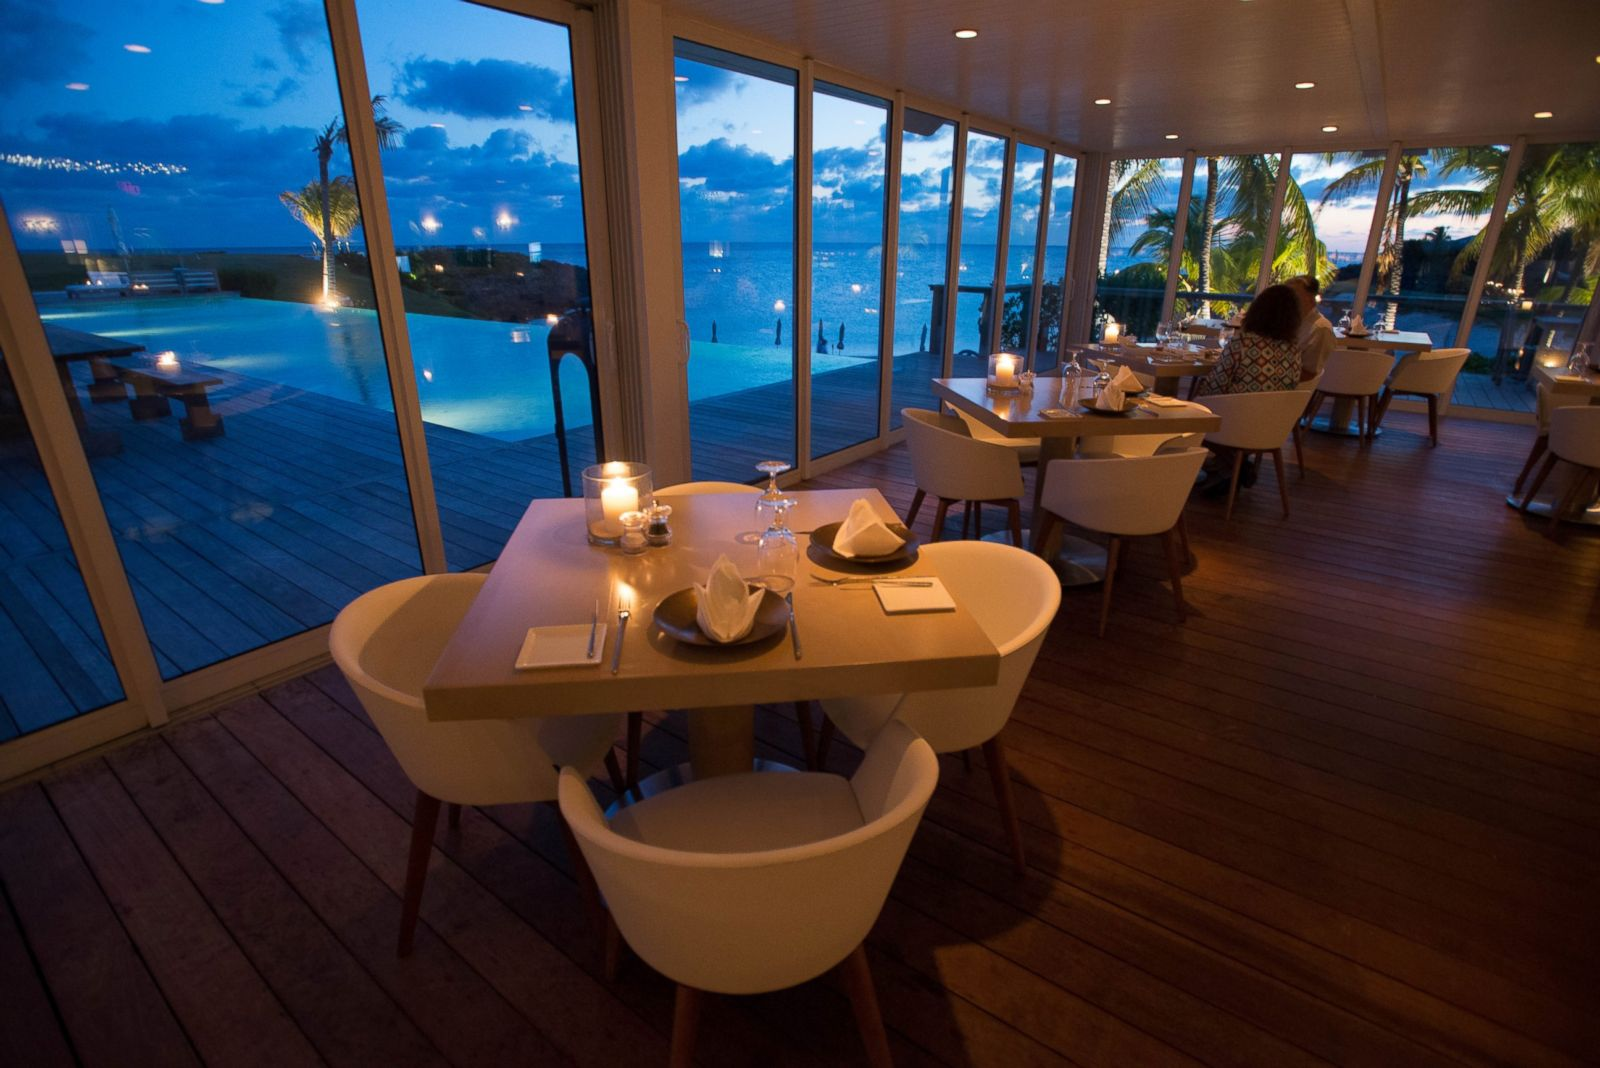 The cove eleuthera bahamas picture 10 of the best new for Top 10 boutique hotels in the world